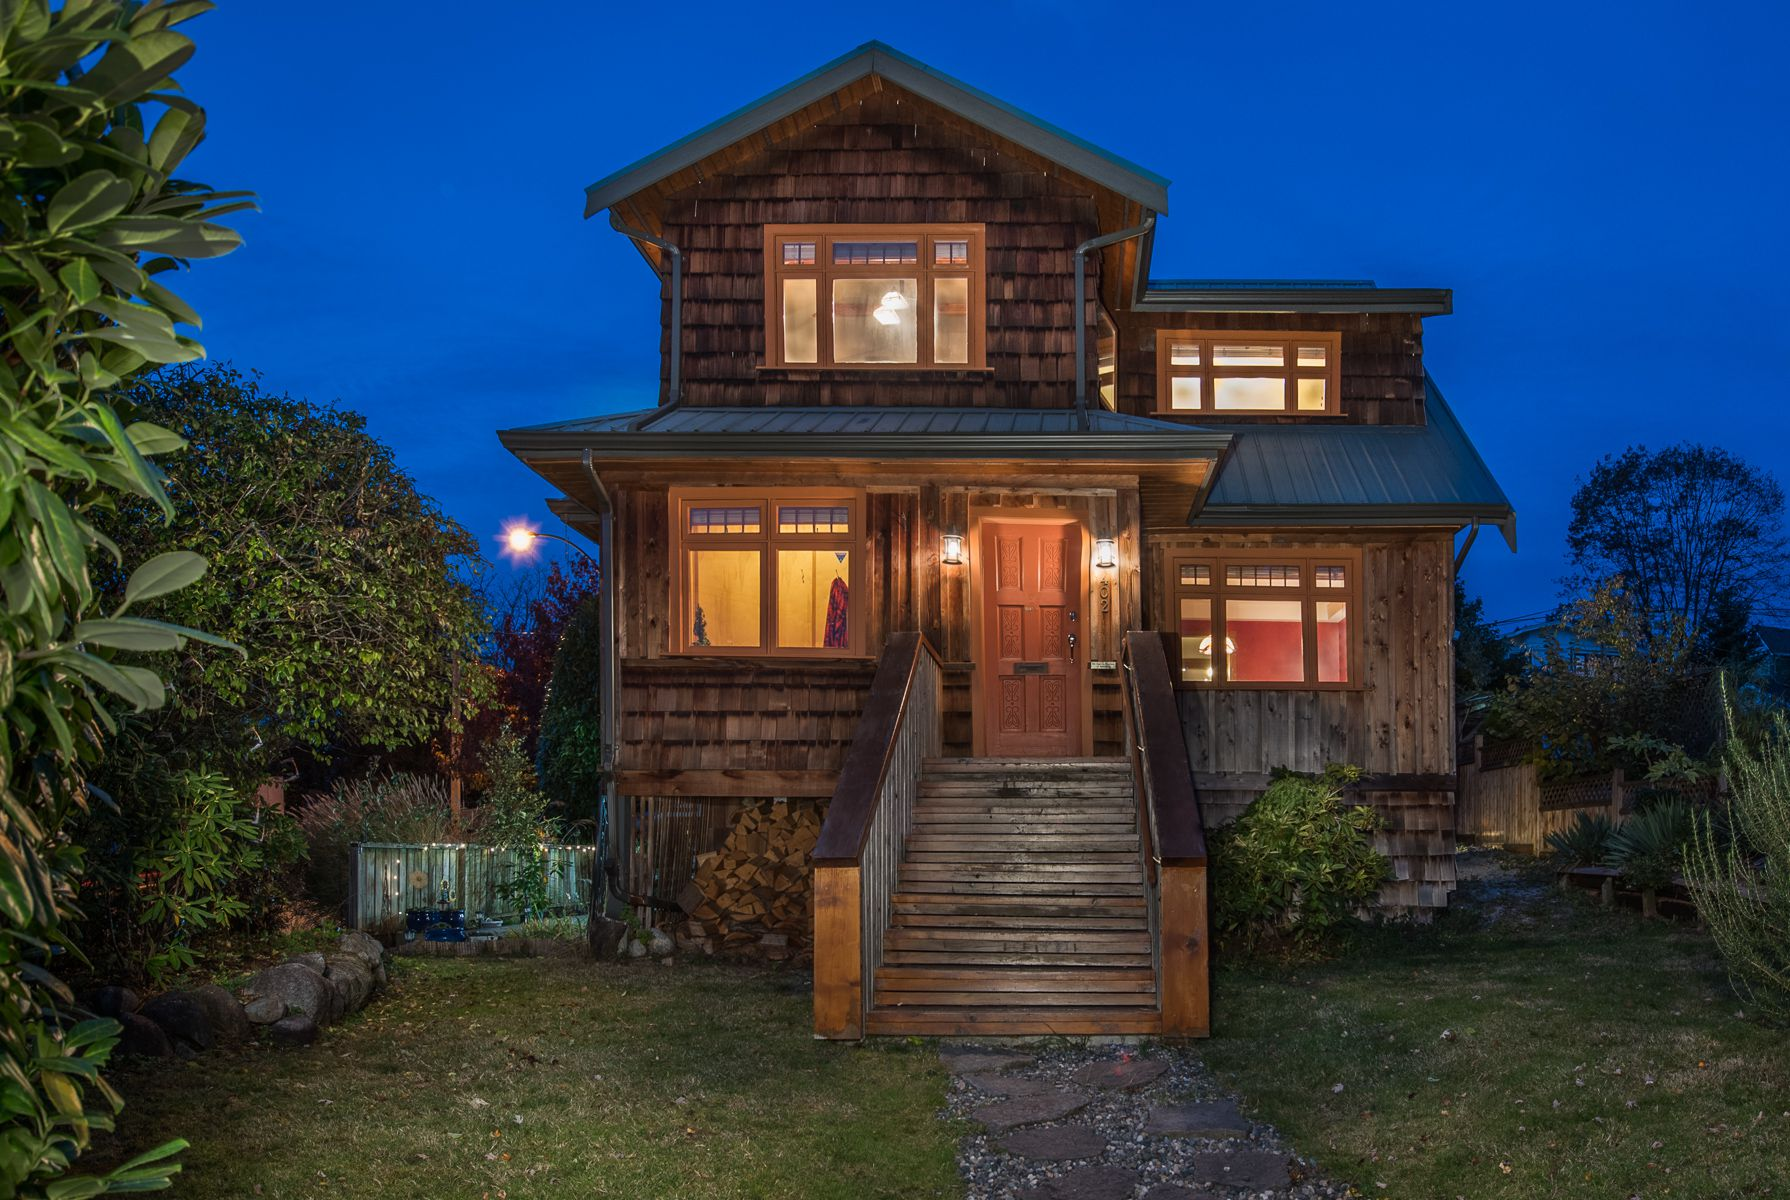 Main Photo: 402 E 5TH Street in North Vancouver: Lower Lonsdale House for sale : MLS®# R2221252